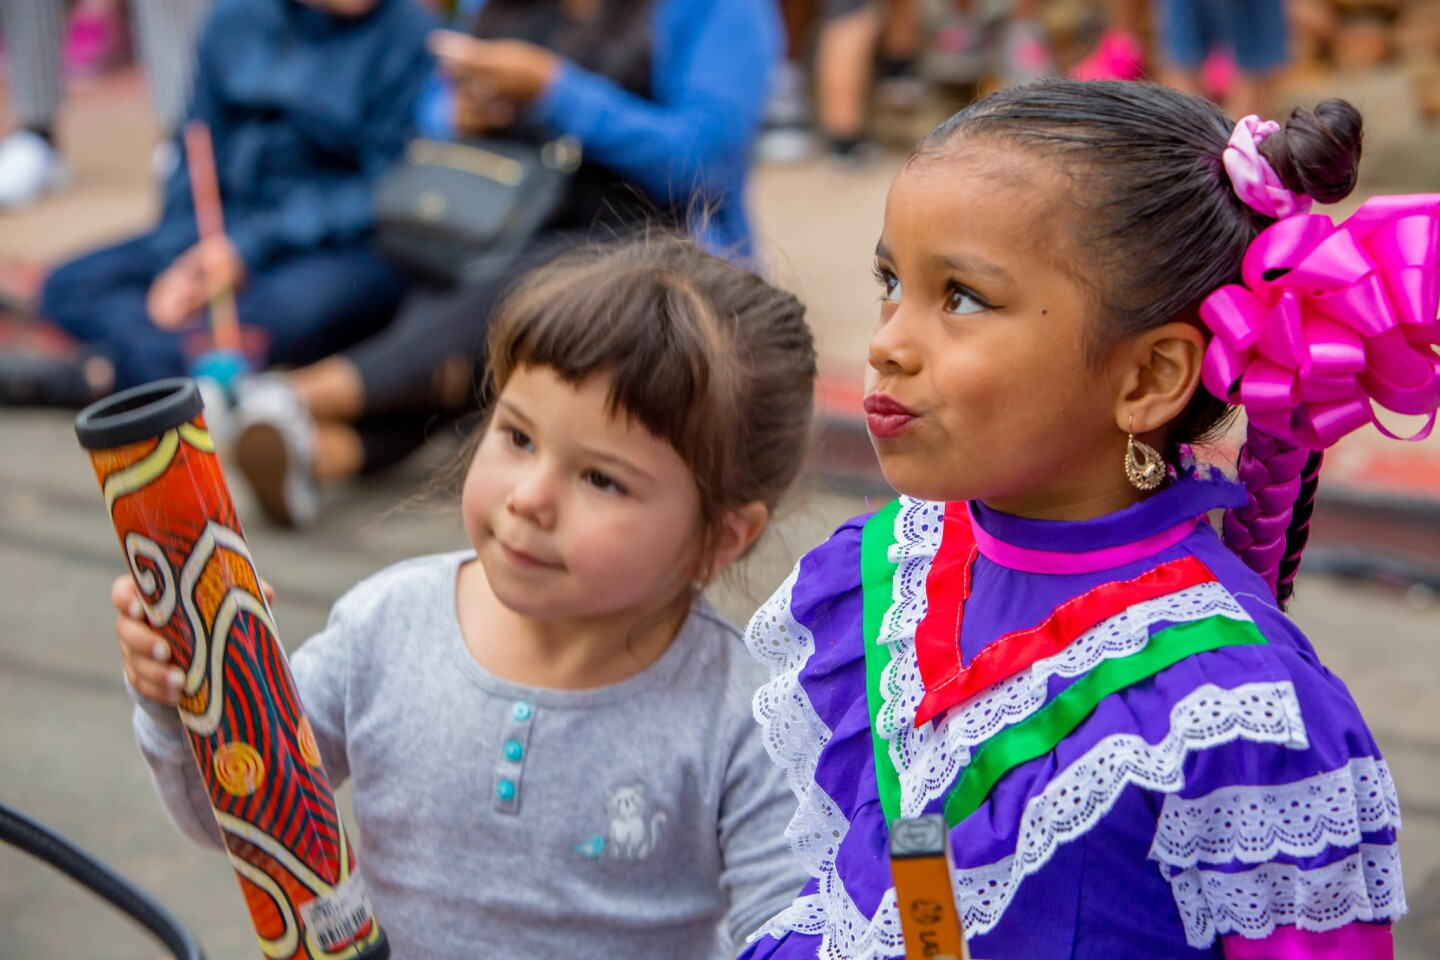 Possibly the most iconic party in San Diego, the 34th annual Fiesta Old Town Cinco de Mayo celebration took place from Friday, May 5 to Sunday, May 7 in Old Town. (Bradley Schweit)